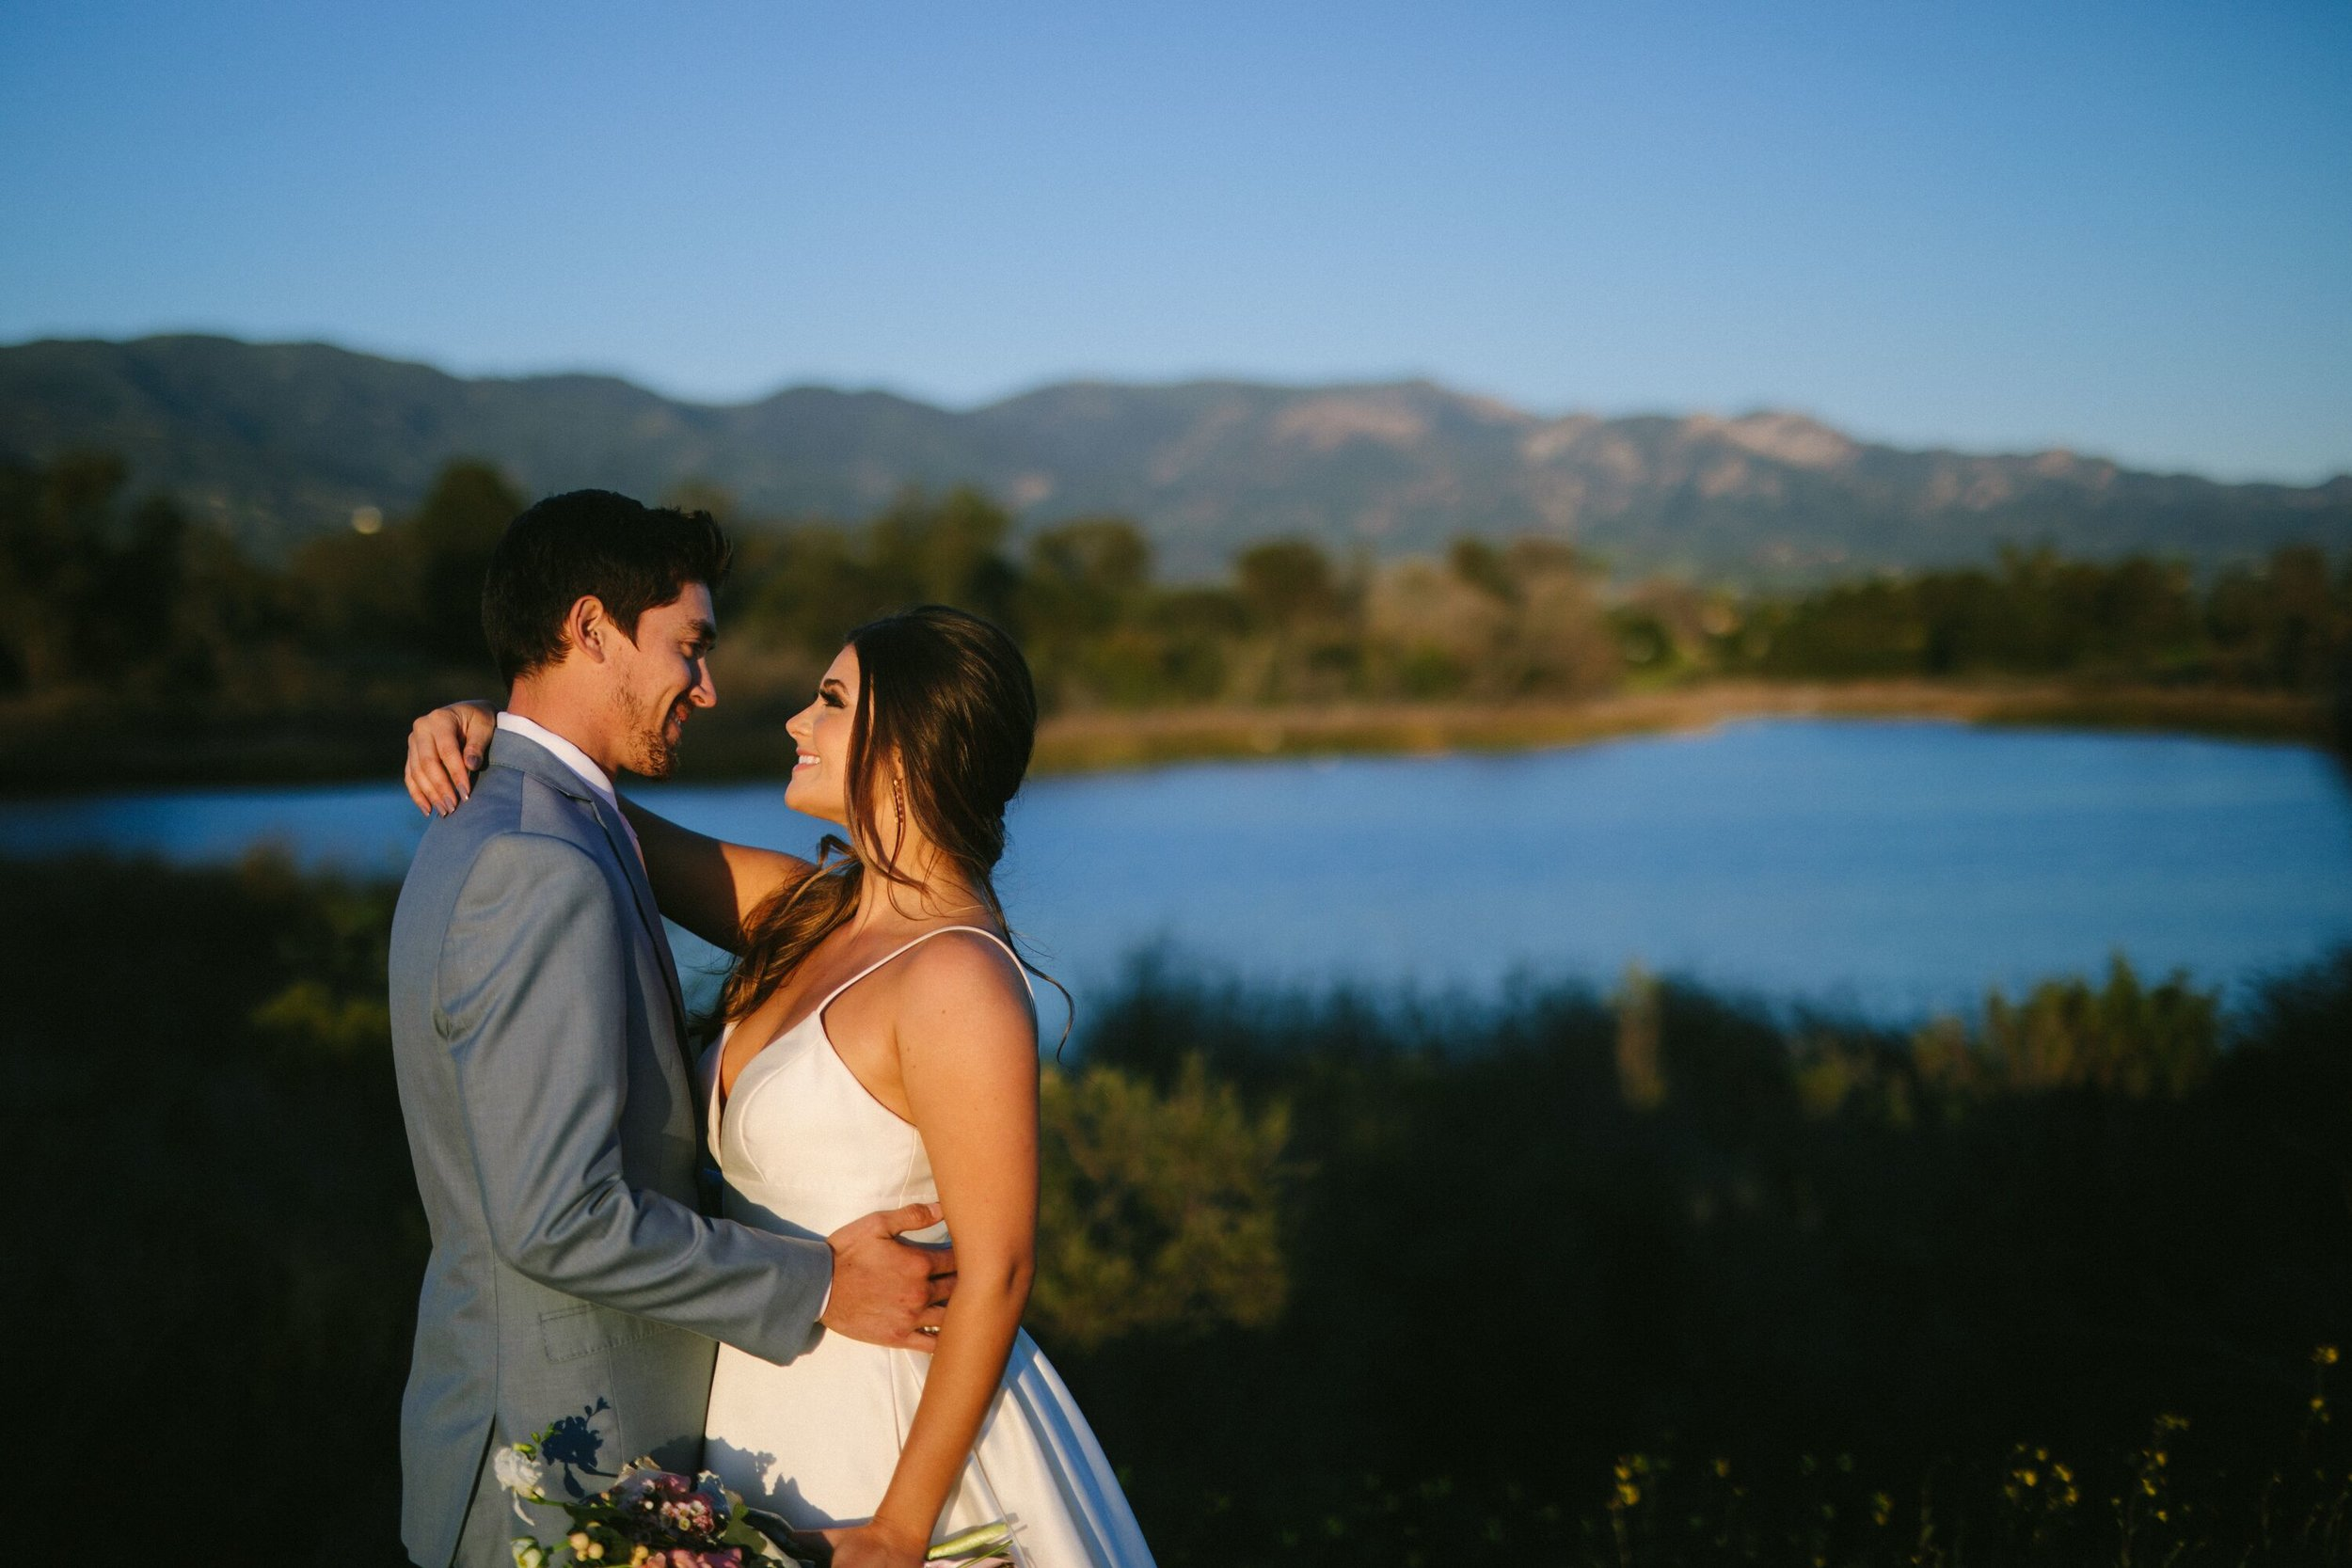 www.santabarbarawedding.com | Photographer: Patrick Ang | Venue: Rancho La Patera & Stow House | Wedding Planner: Elyse Rowen of Elyse Events | Bride and Groom Overlooking Water